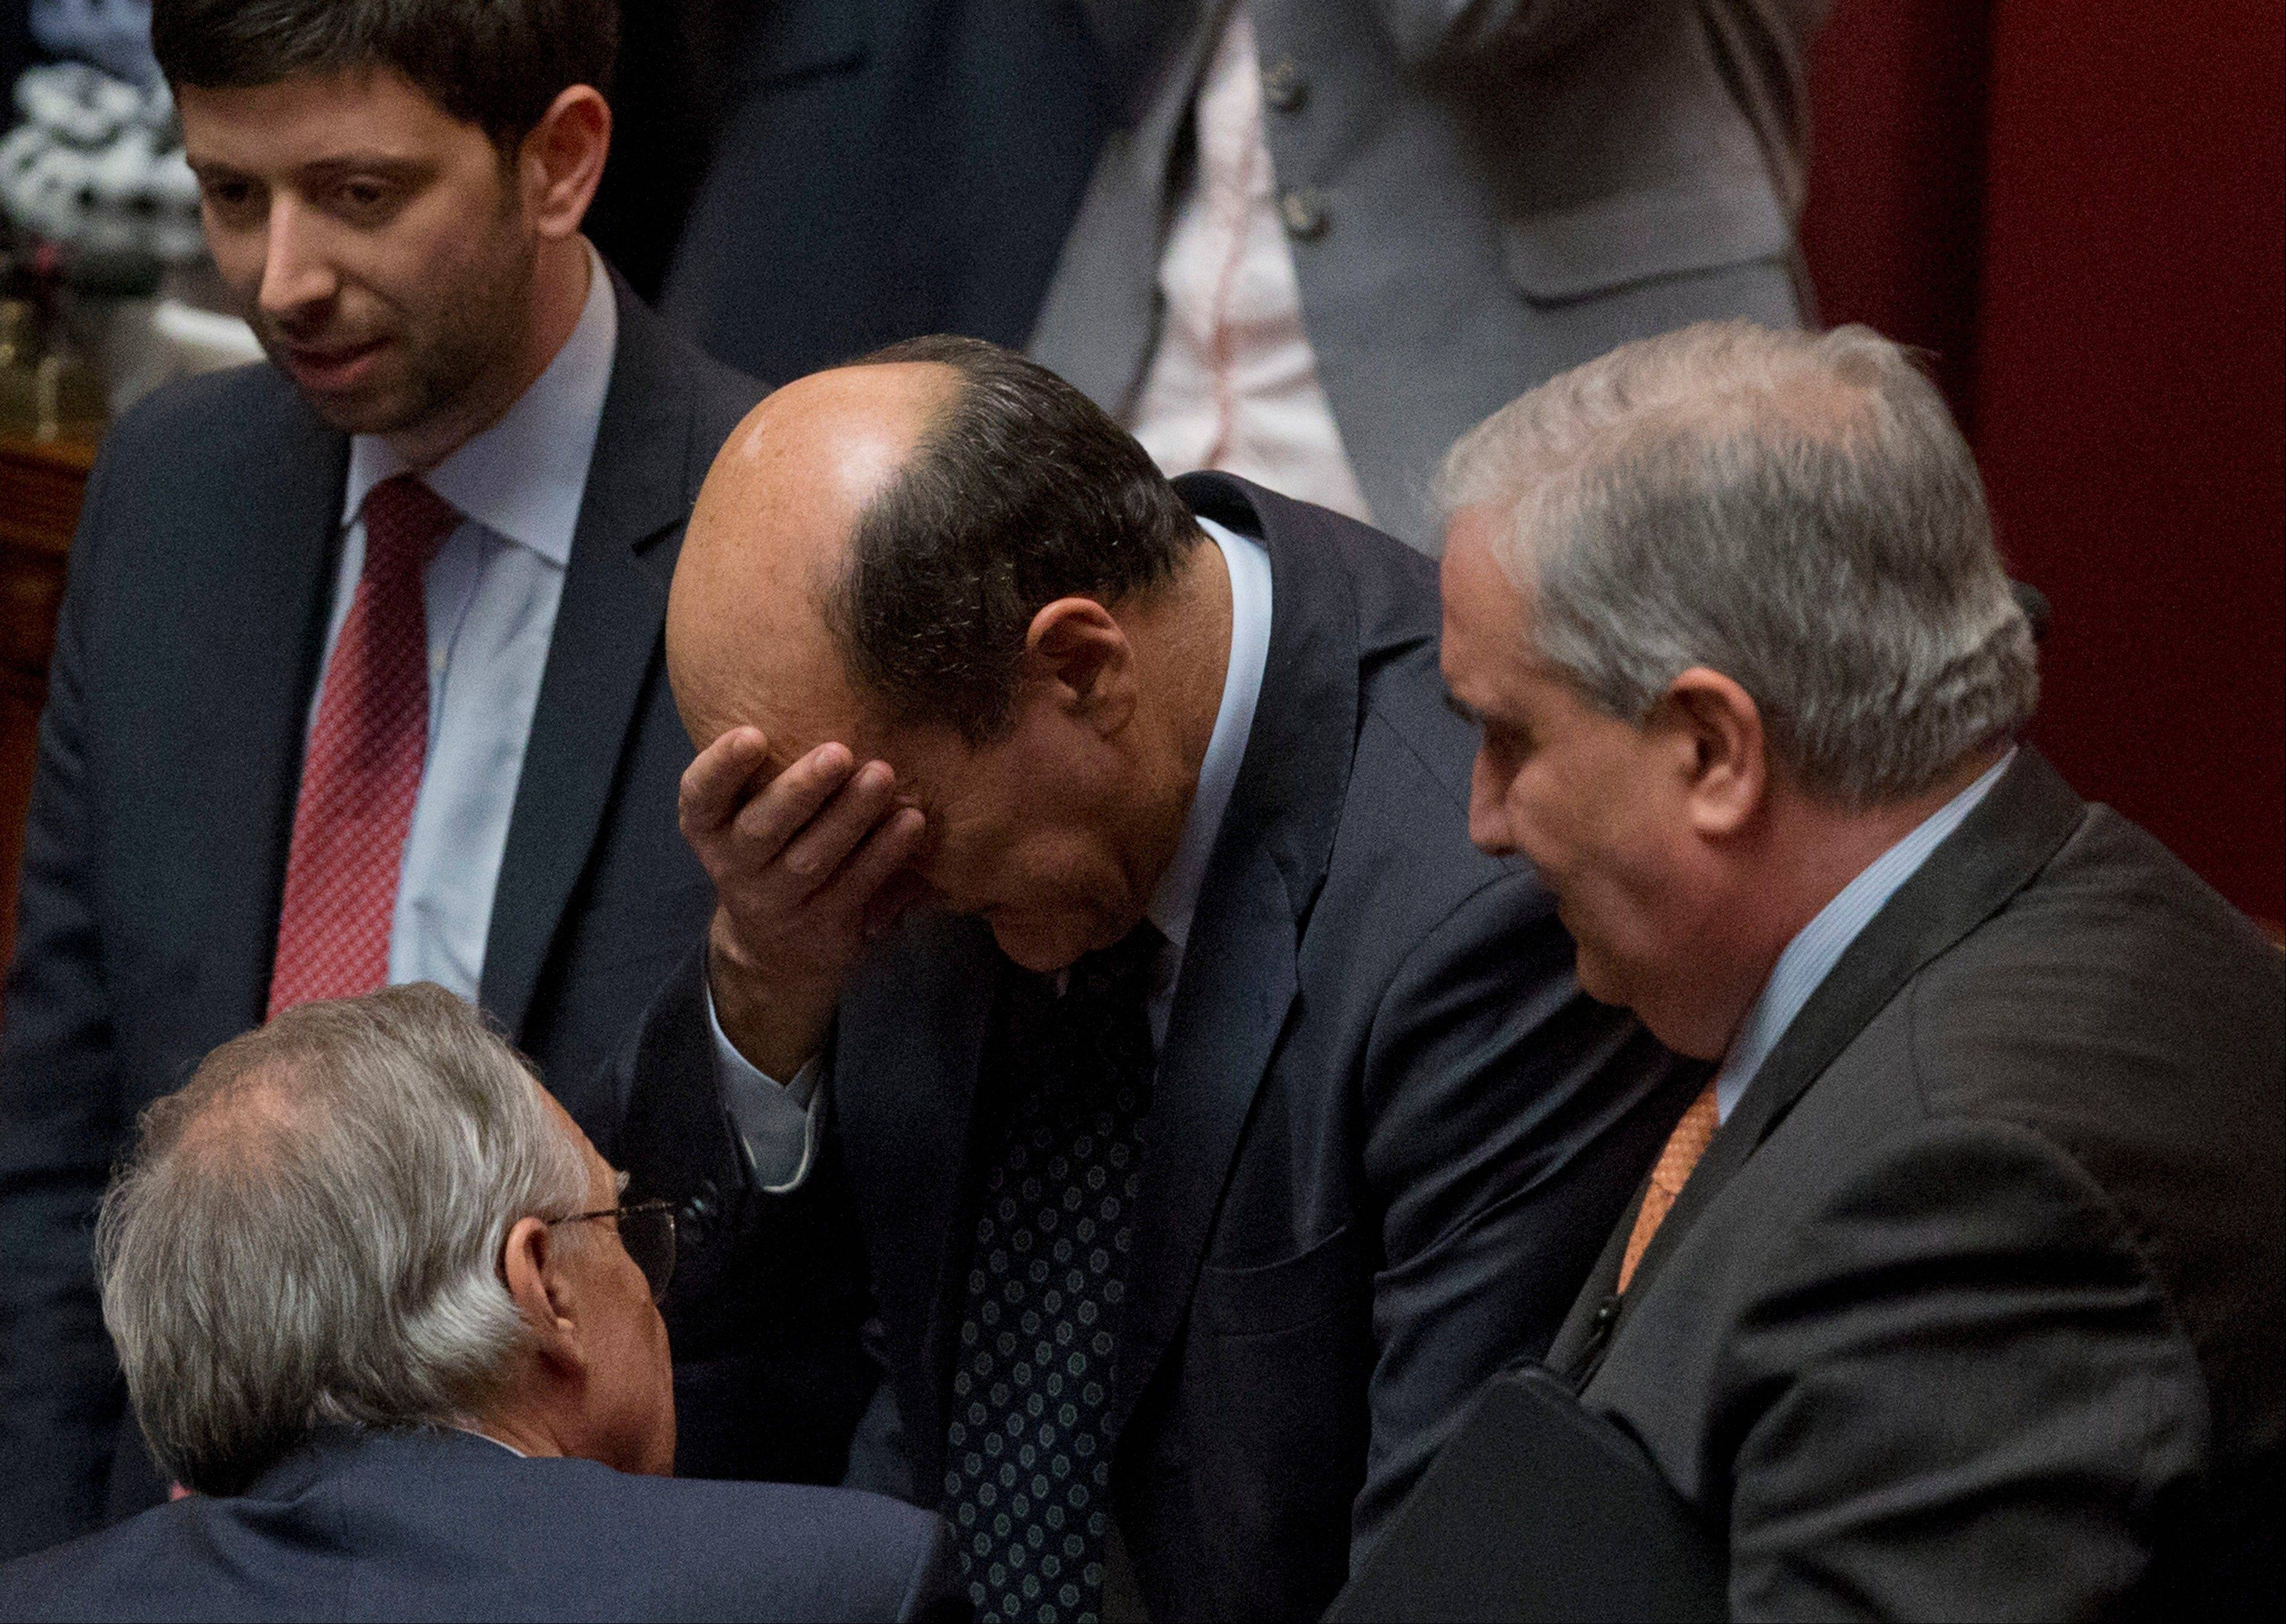 Democratic Party secretary Pierluigi Bersani touches his forehead Saturday after Giorgio Napolitano was elected new Italian head of state, at the Lower Chamber, in Rome.